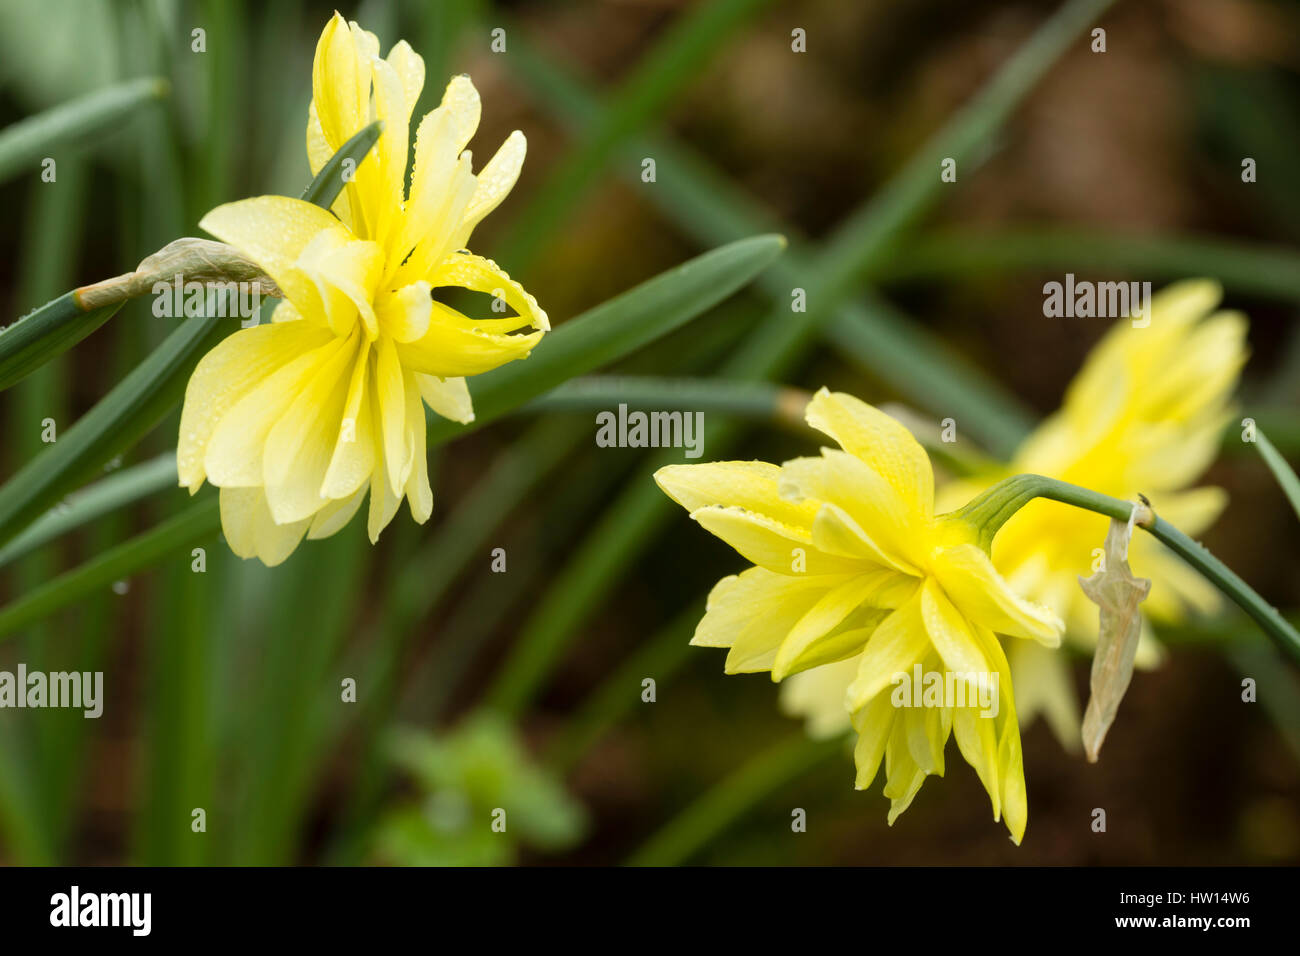 Pale yellow double flowers of the heritage daffodil variety, Queen Anne's double, Narcissus 'Eyestettensis' - Stock Image